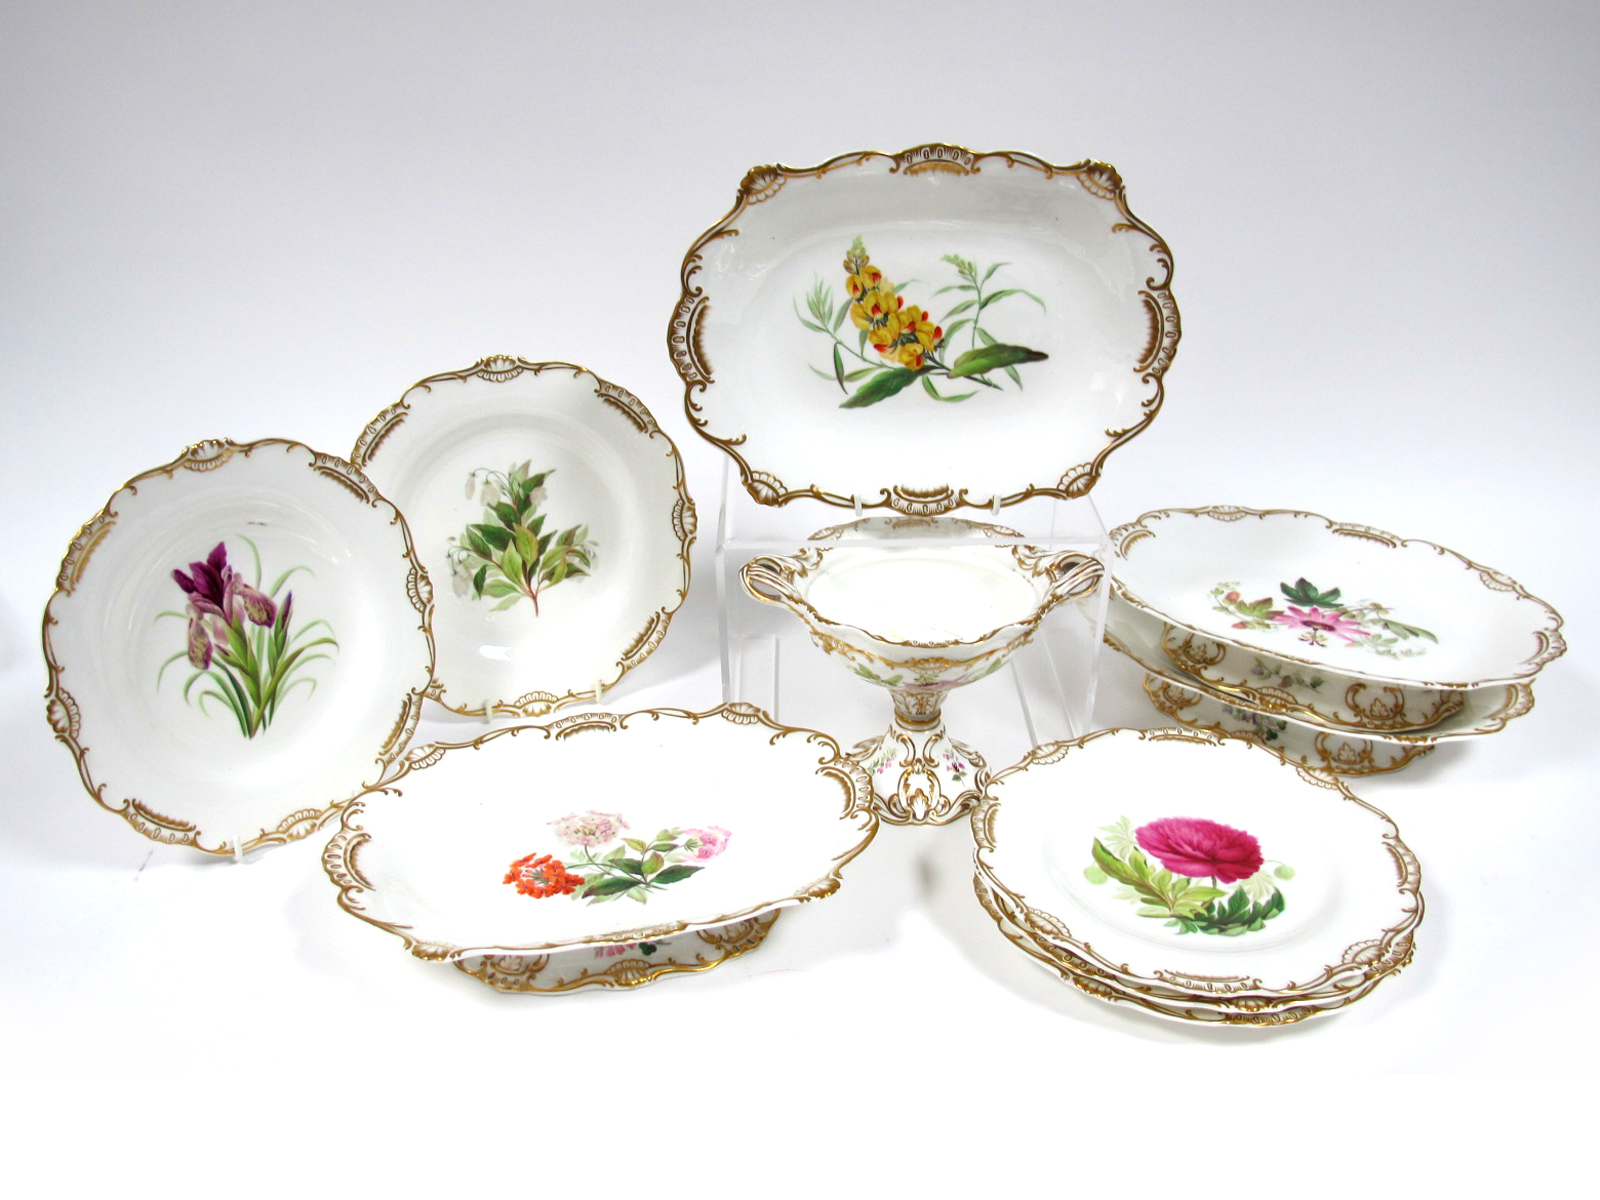 Lot 459 - A Mid XIX Century English Porcelain Part Dessert Service, each piece differently painted with a